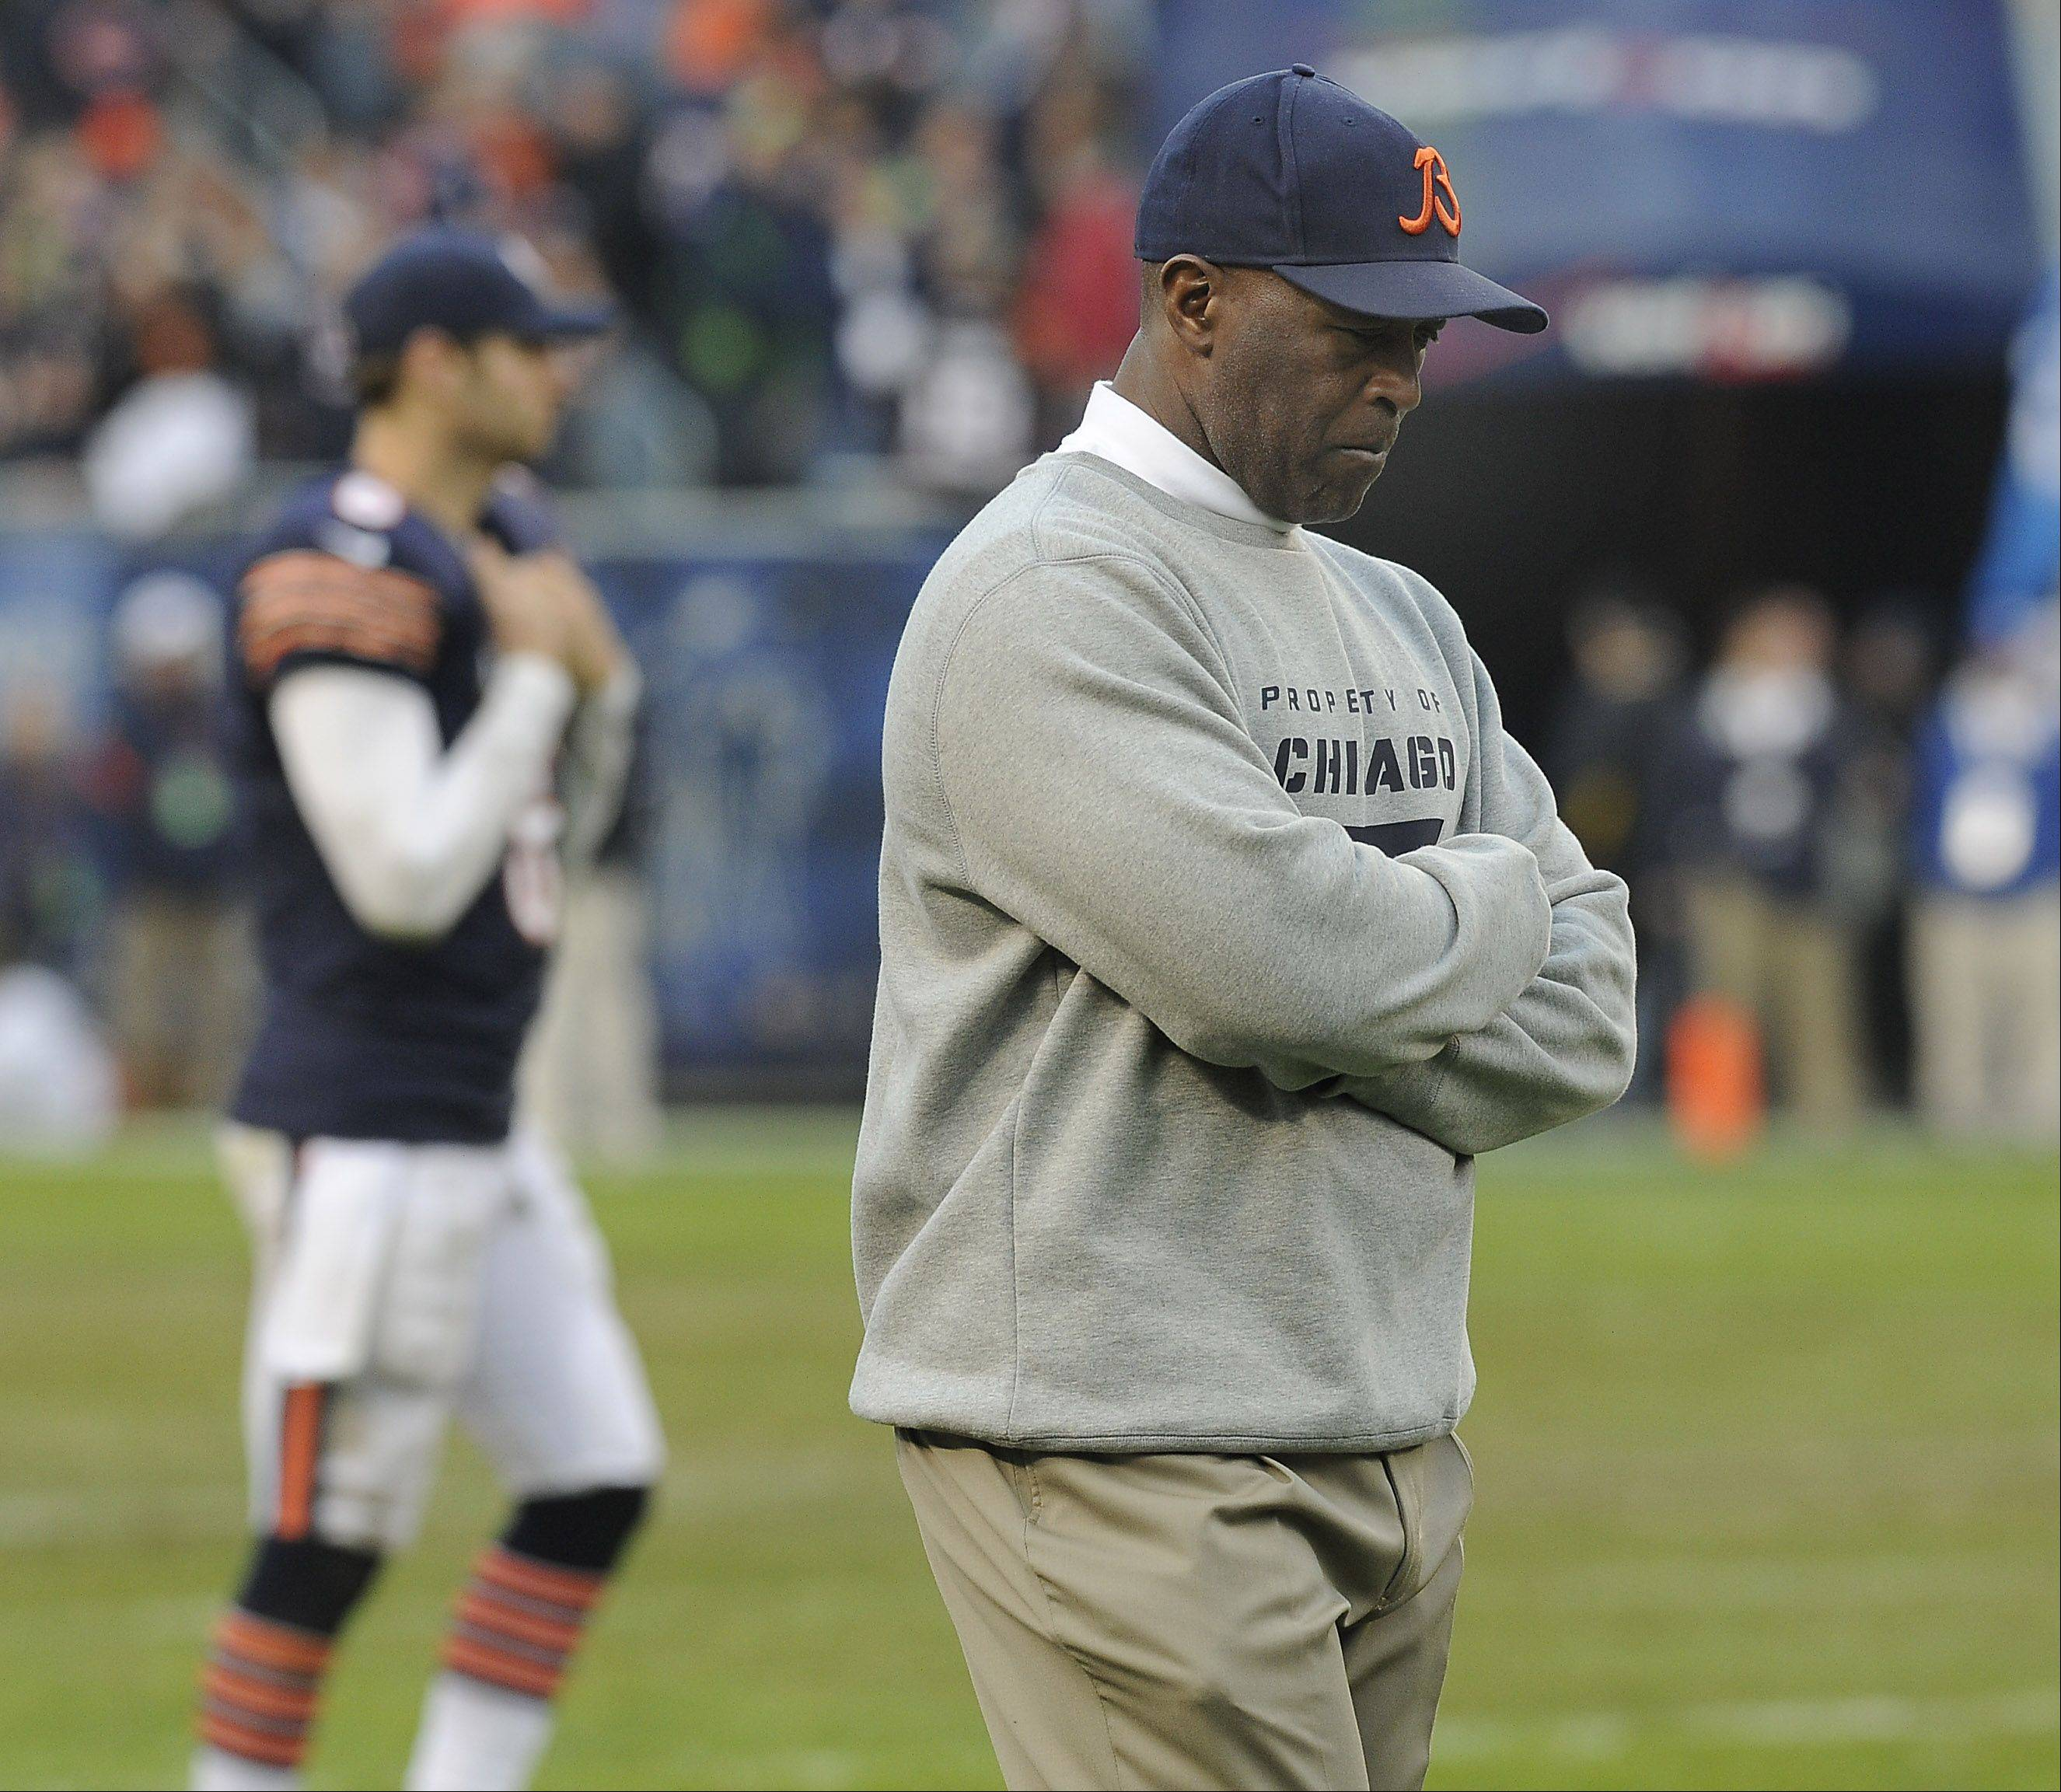 Mark Welsh/mwelsh@dailyherald.comBears coach Lovie Smith looks down at the end of the game as quarterback Jay Cutler heads off the field in the 23-17 loss the Seahawks at Soldier Field in Chicago.